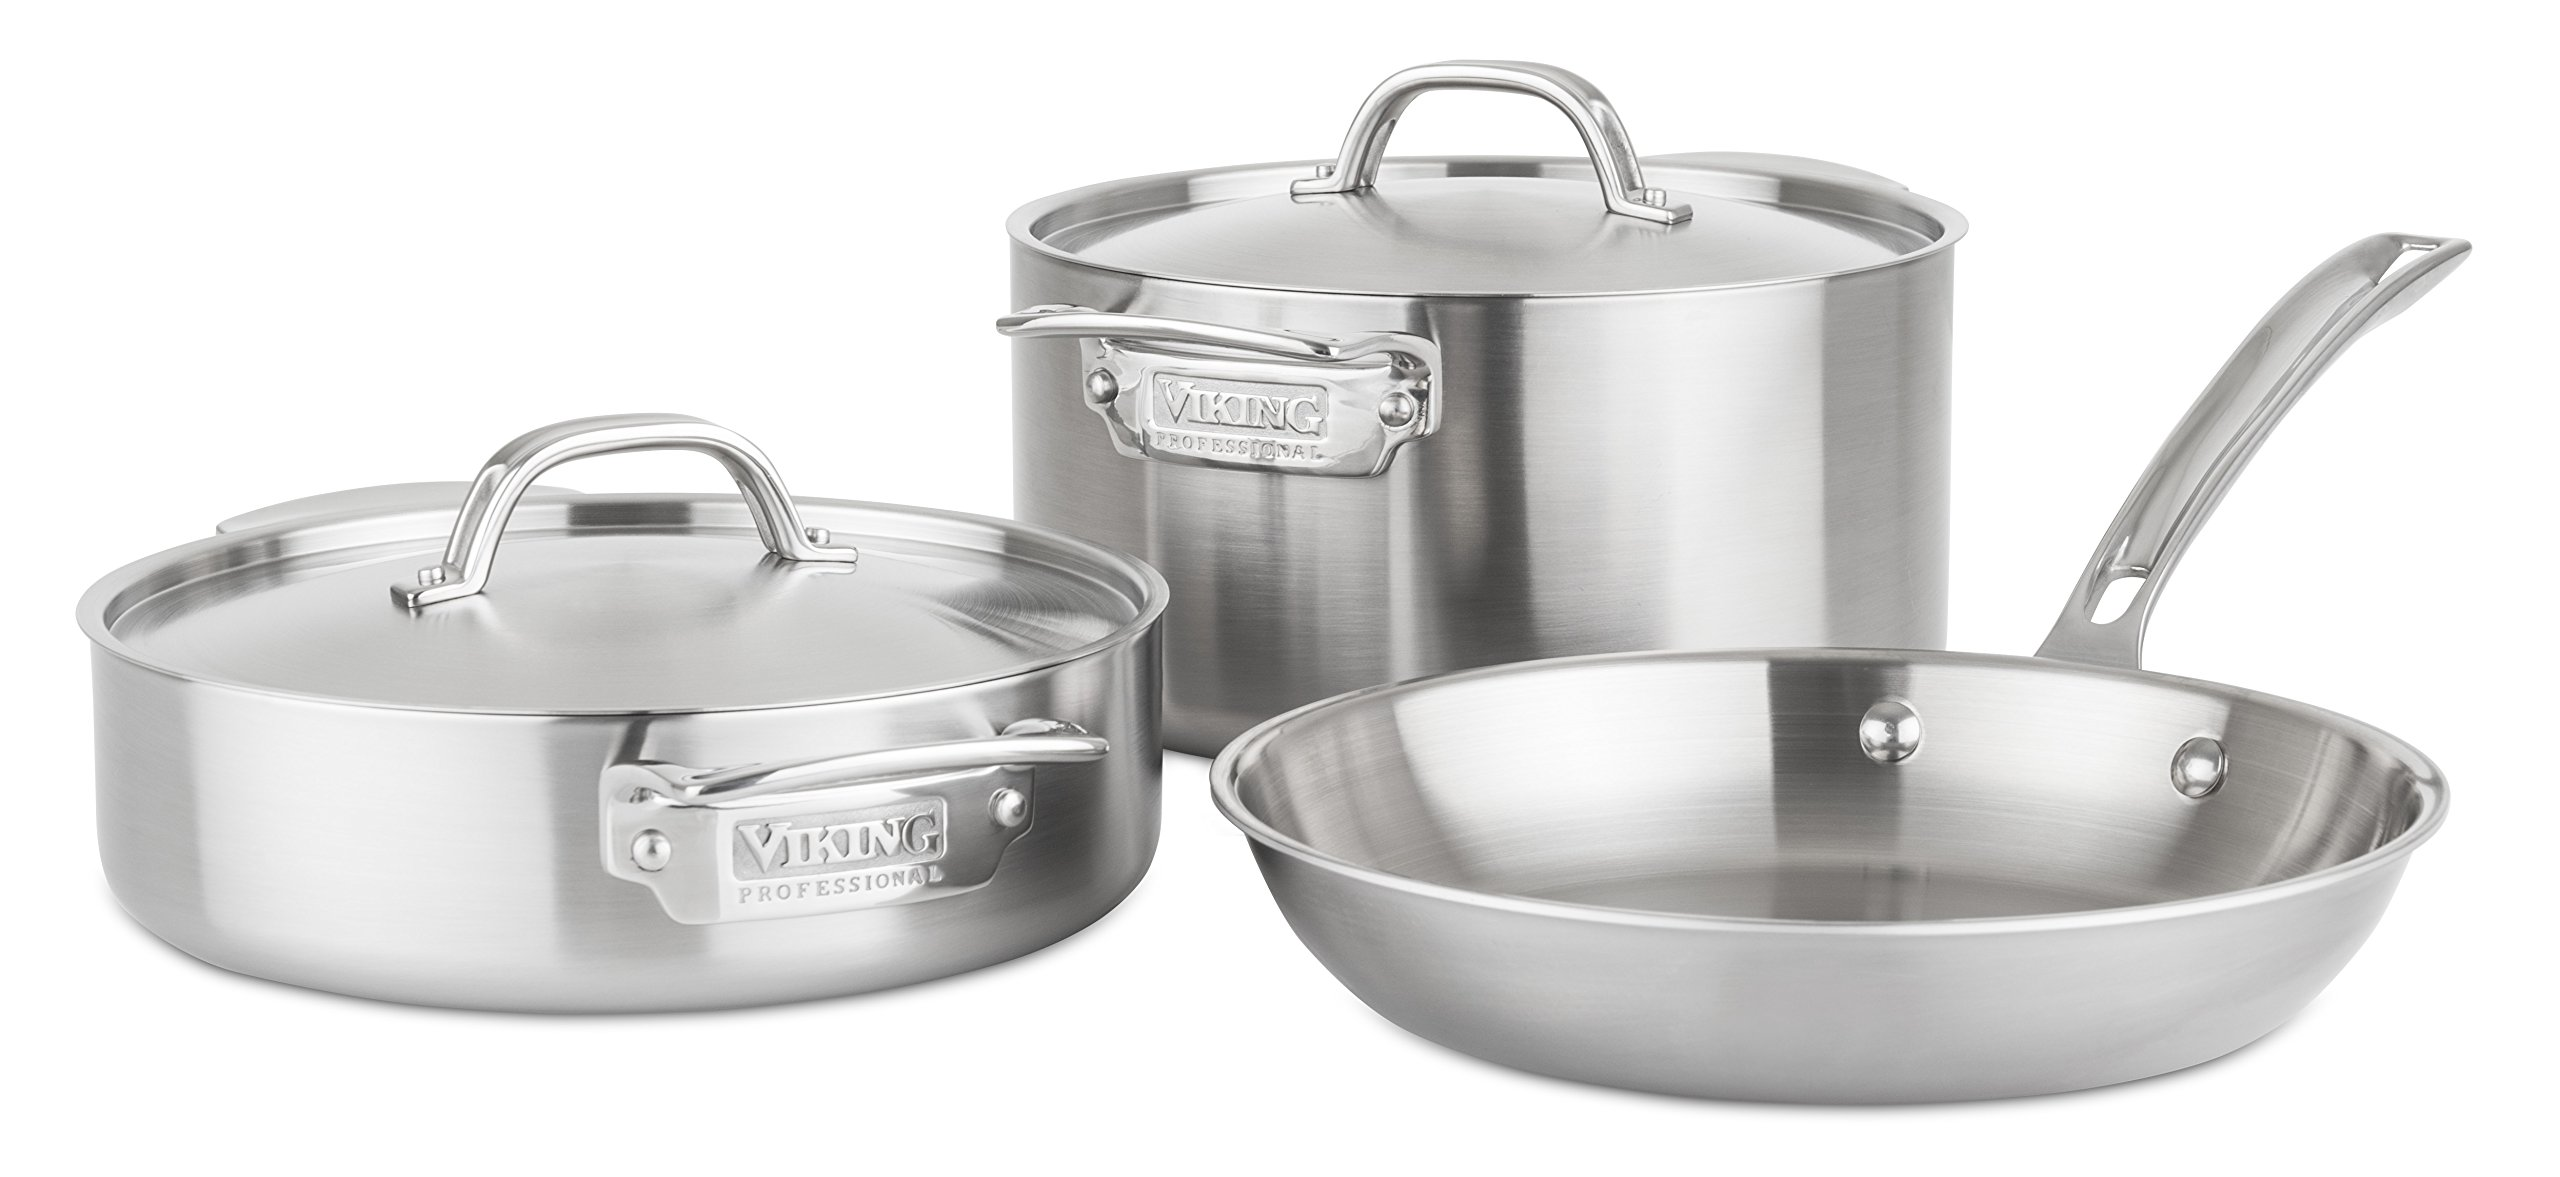 Viking 4515-1S05S Professional 5-Ply Stainless Steel Cookware Set, 5 Piece, Silver by Viking Culinary